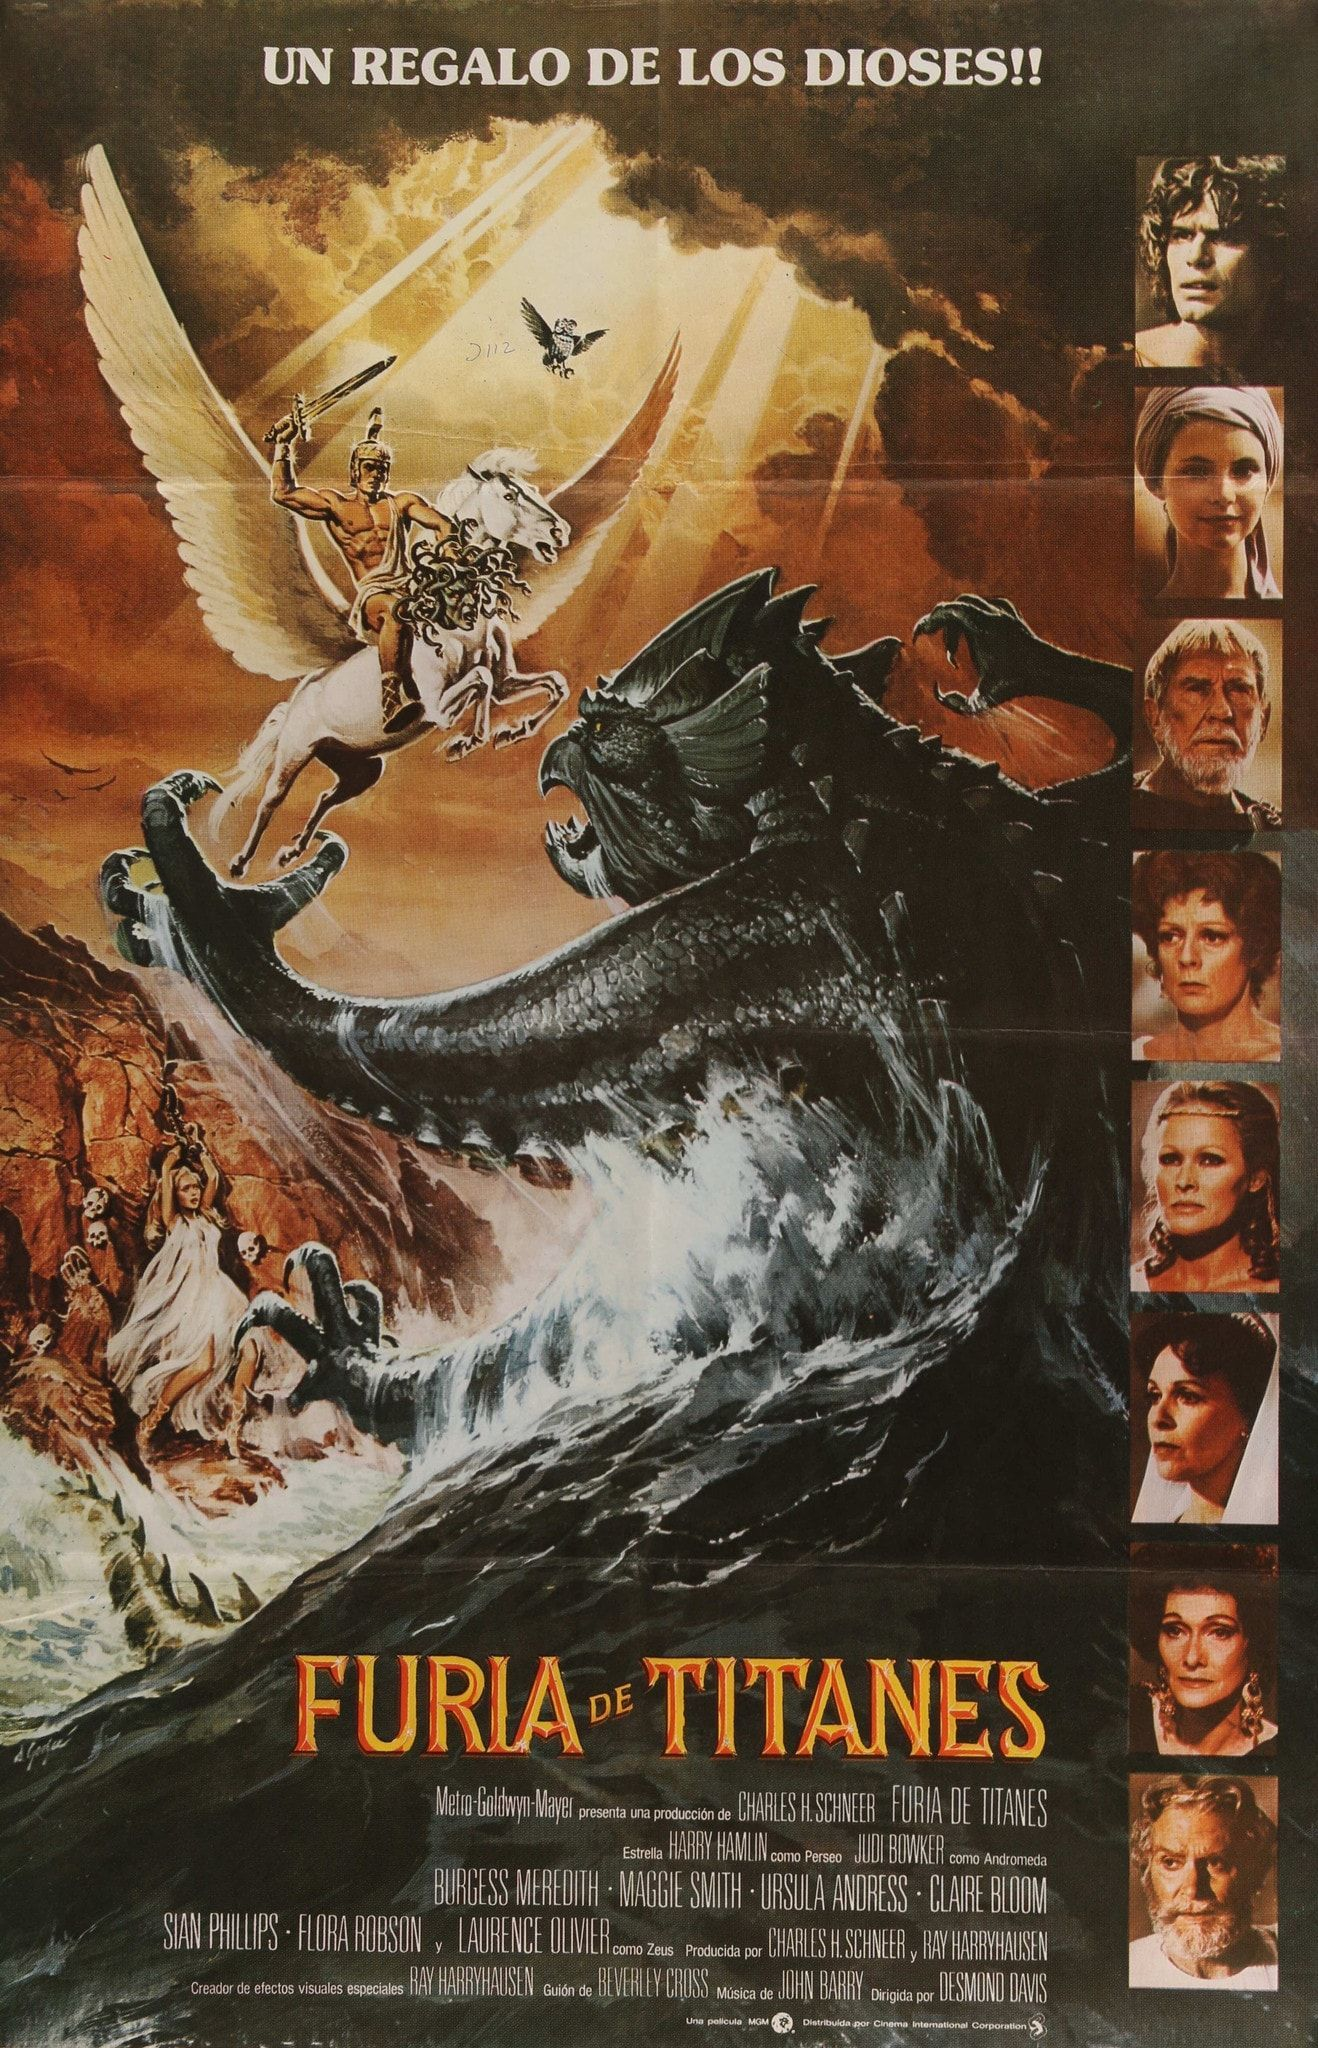 VINTAGE CLASH OF THE TITANS MOVIE POSTER A4 PRINT